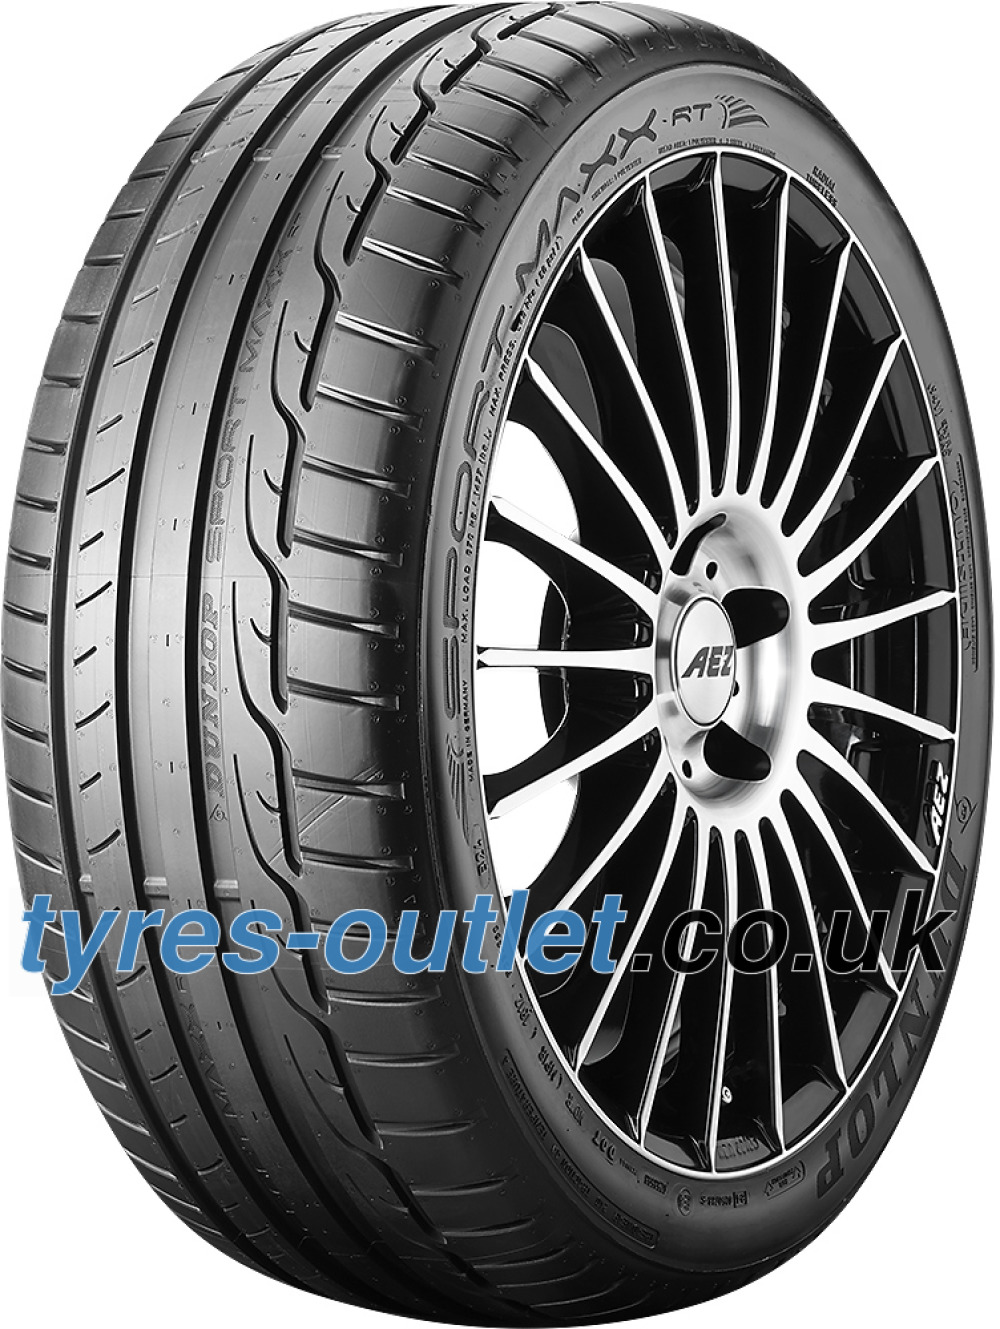 Dunlop Sport Maxx RT ( 225/55 R16 95Y with rim protection (MFS) )